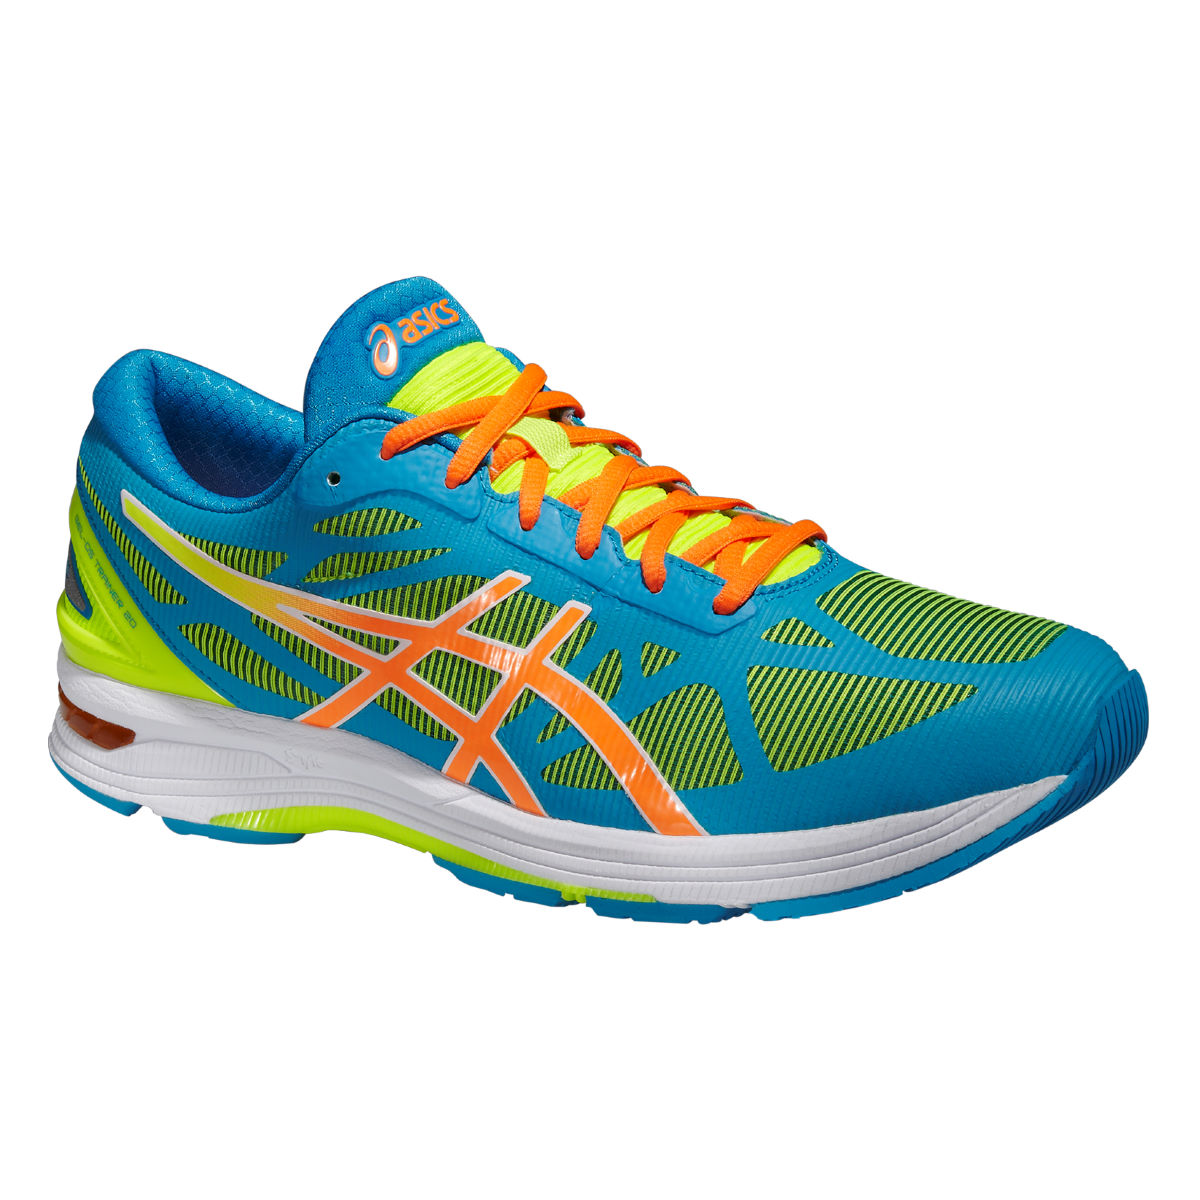 Asics Gel-DS Trainer 20 Shoes (AW15)